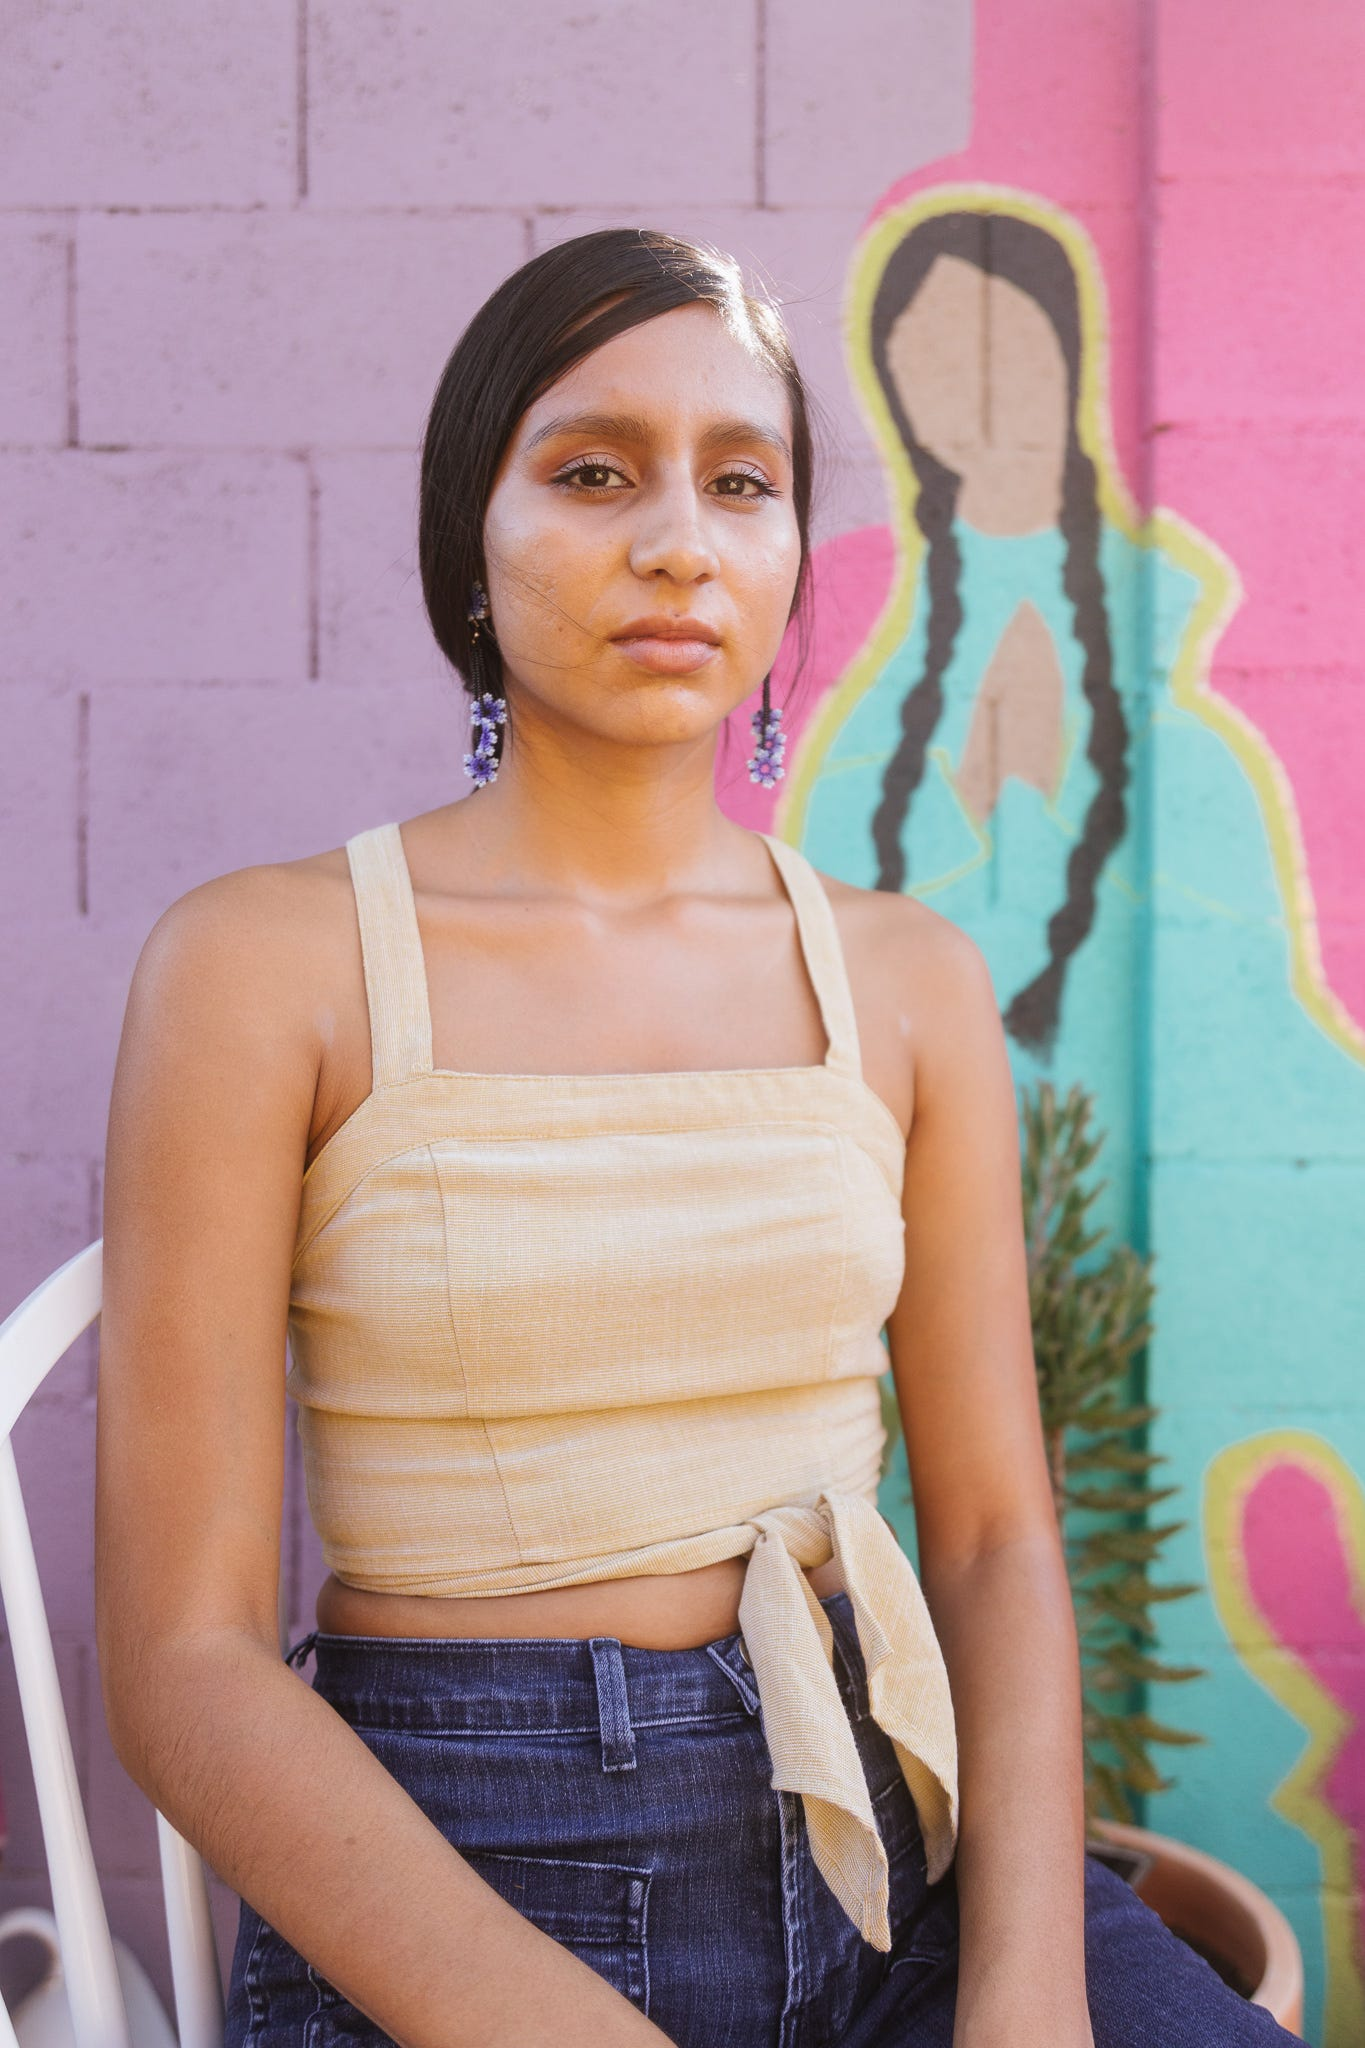 Selina Martinez is a Yoeme creative who seeks to educate others about her culture and identity by using her background in architecture and research to present information in new, more digestible ways.